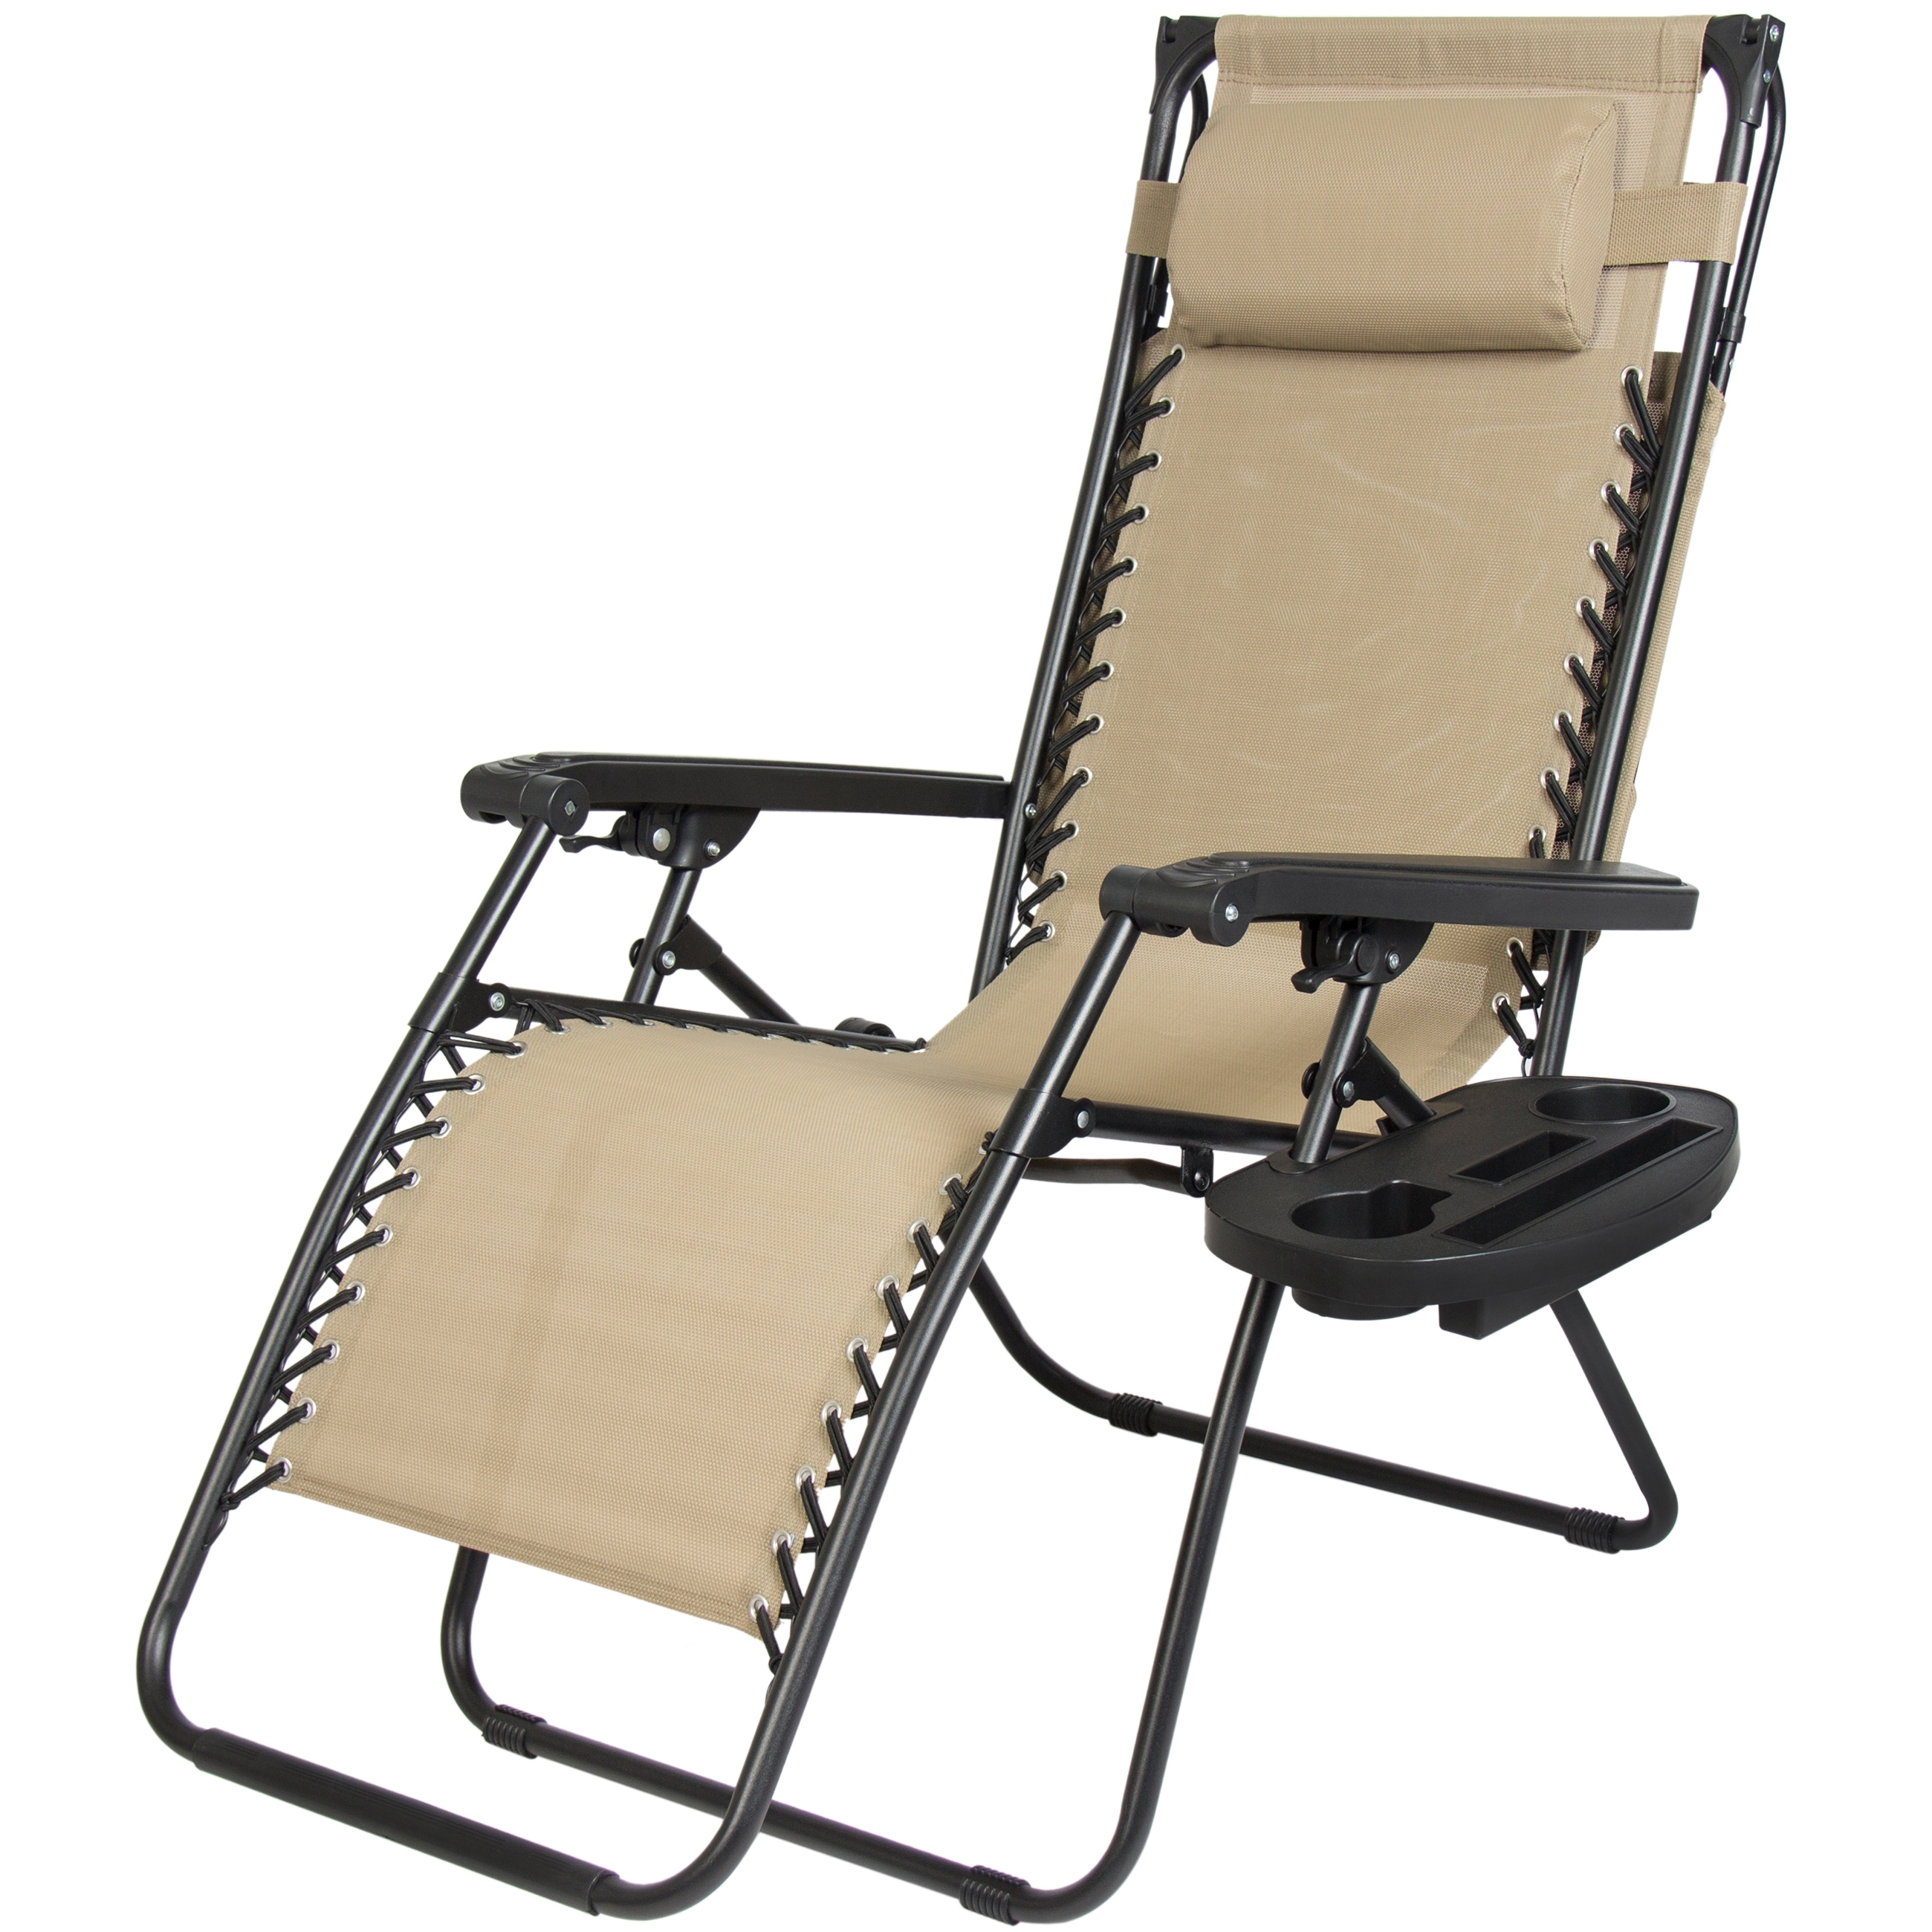 Lounge Chair : Outdoor Lounge Chairs With Wheels Patio Furniture Throughout Preferred Folding Chaise Lounge Chairs For Outdoor (View 14 of 15)